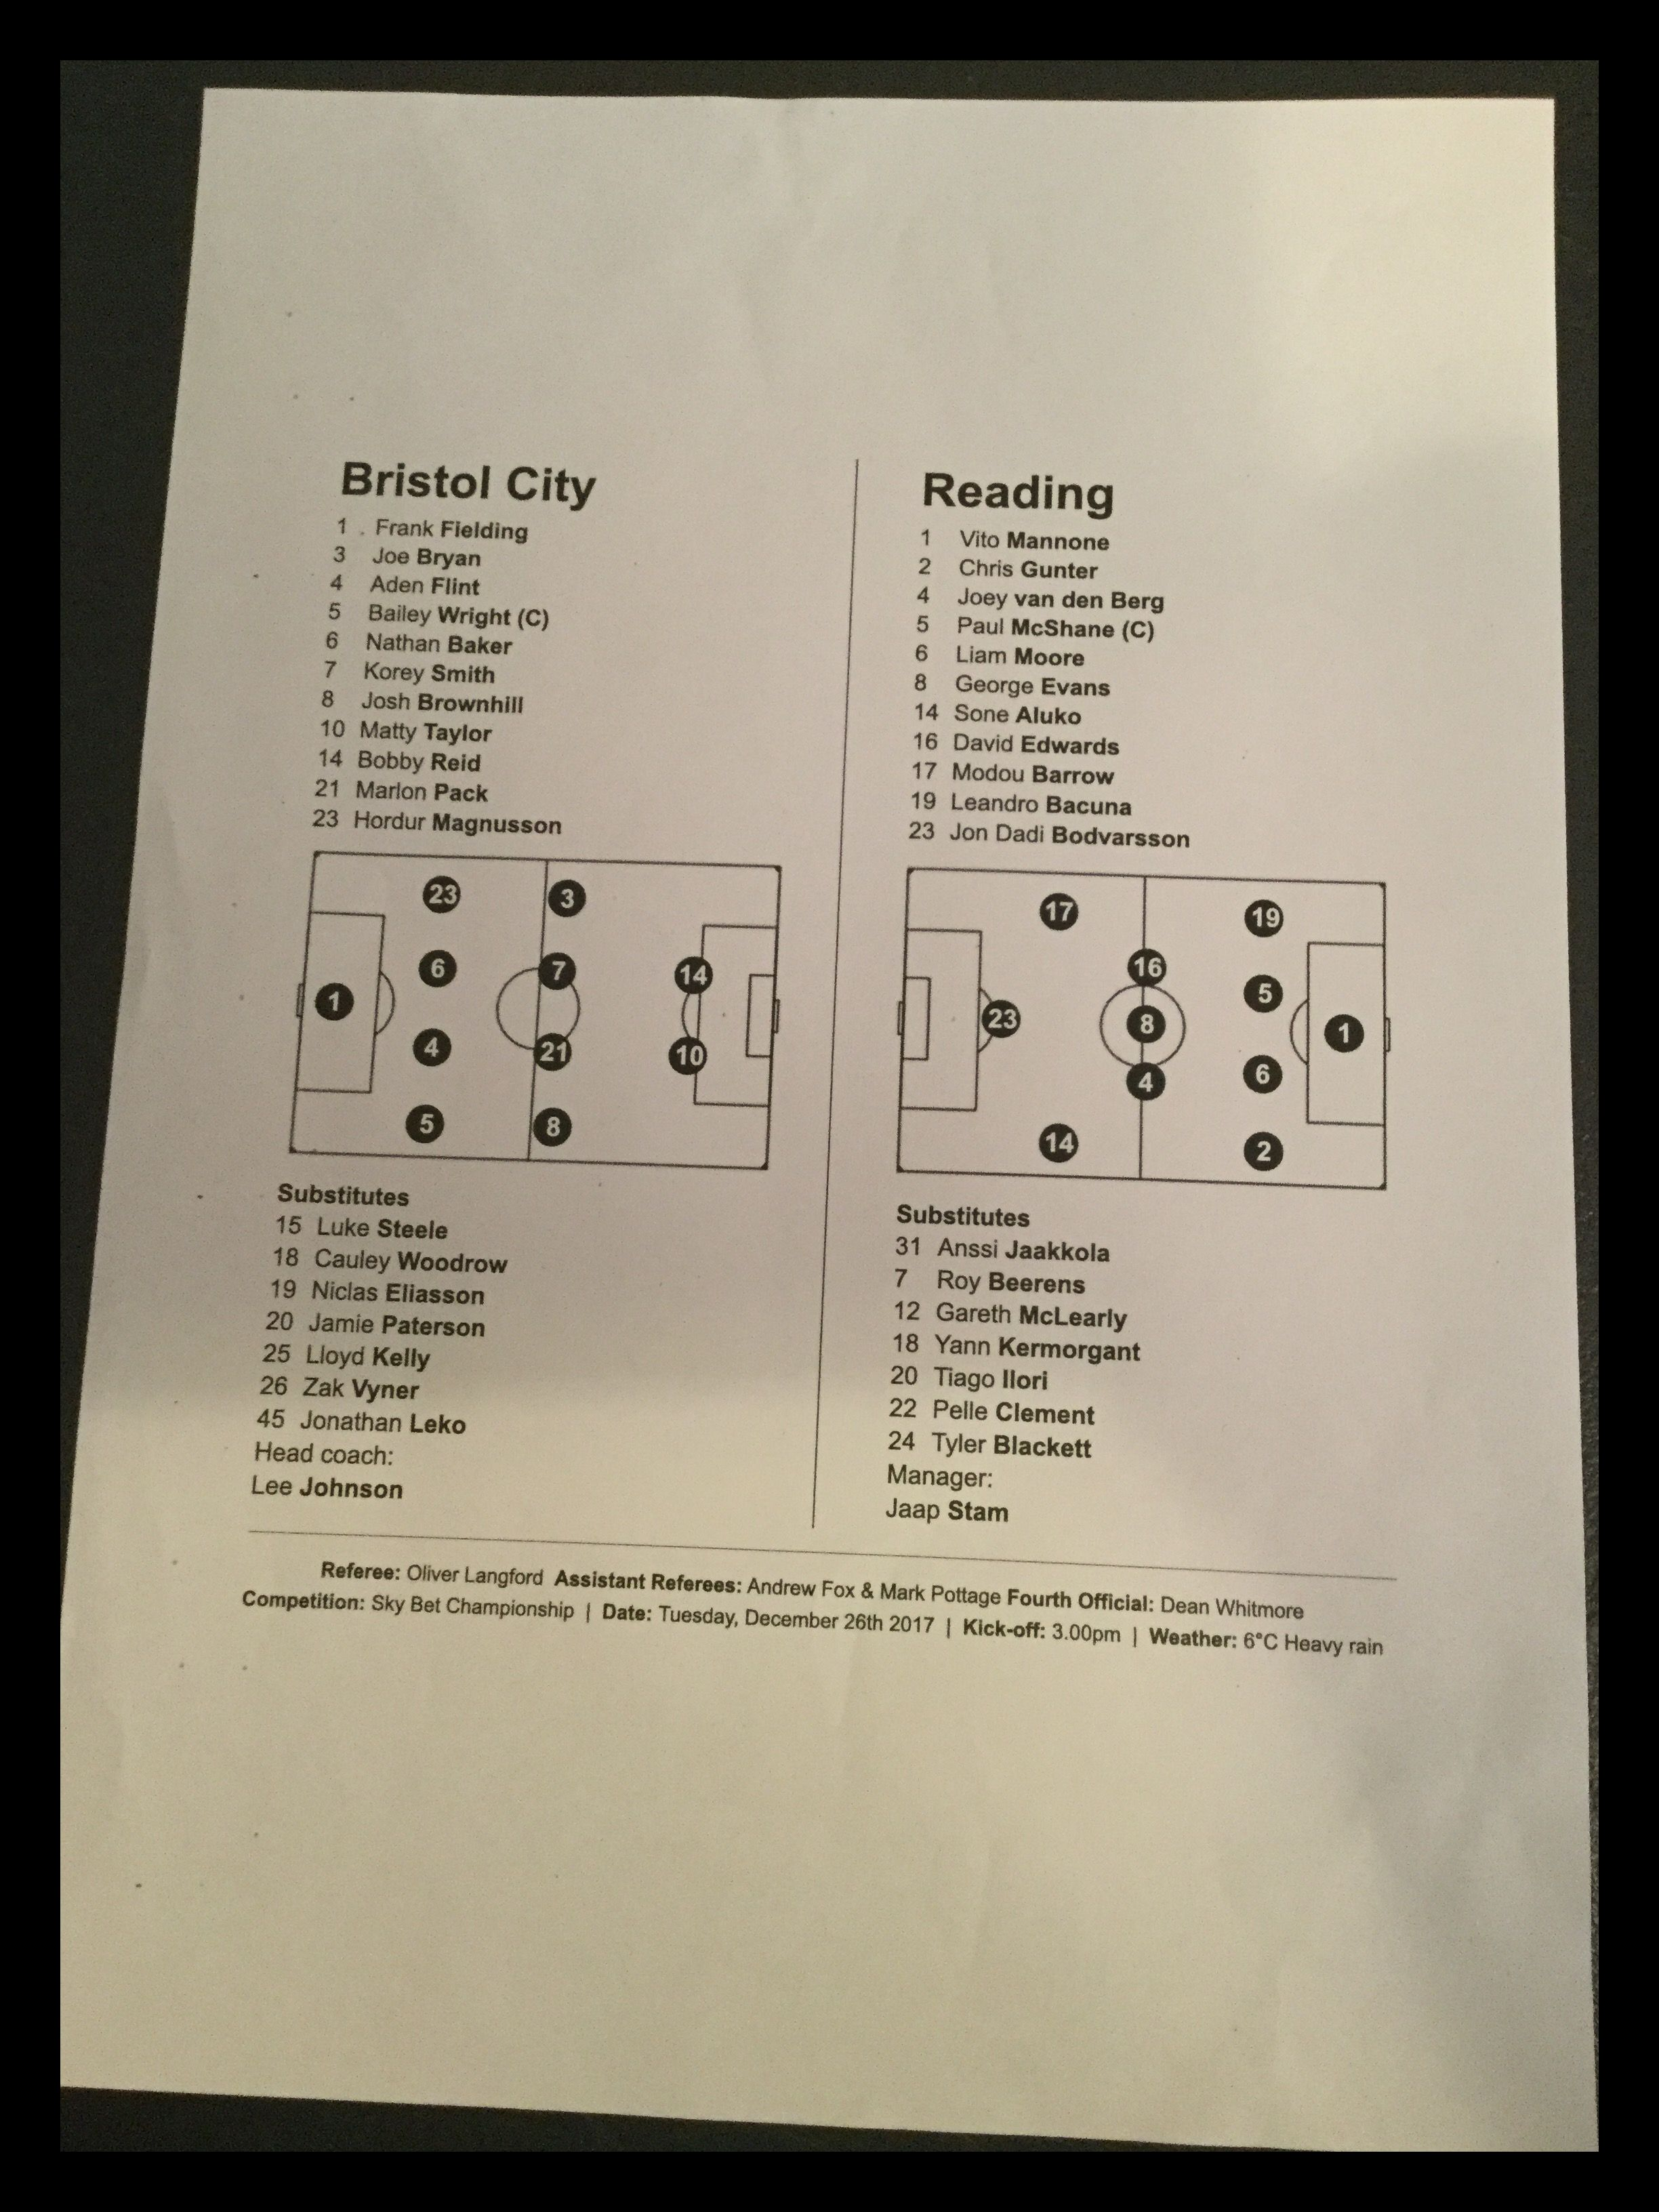 Bristol City v Reading 26-12-17 Team Sheet